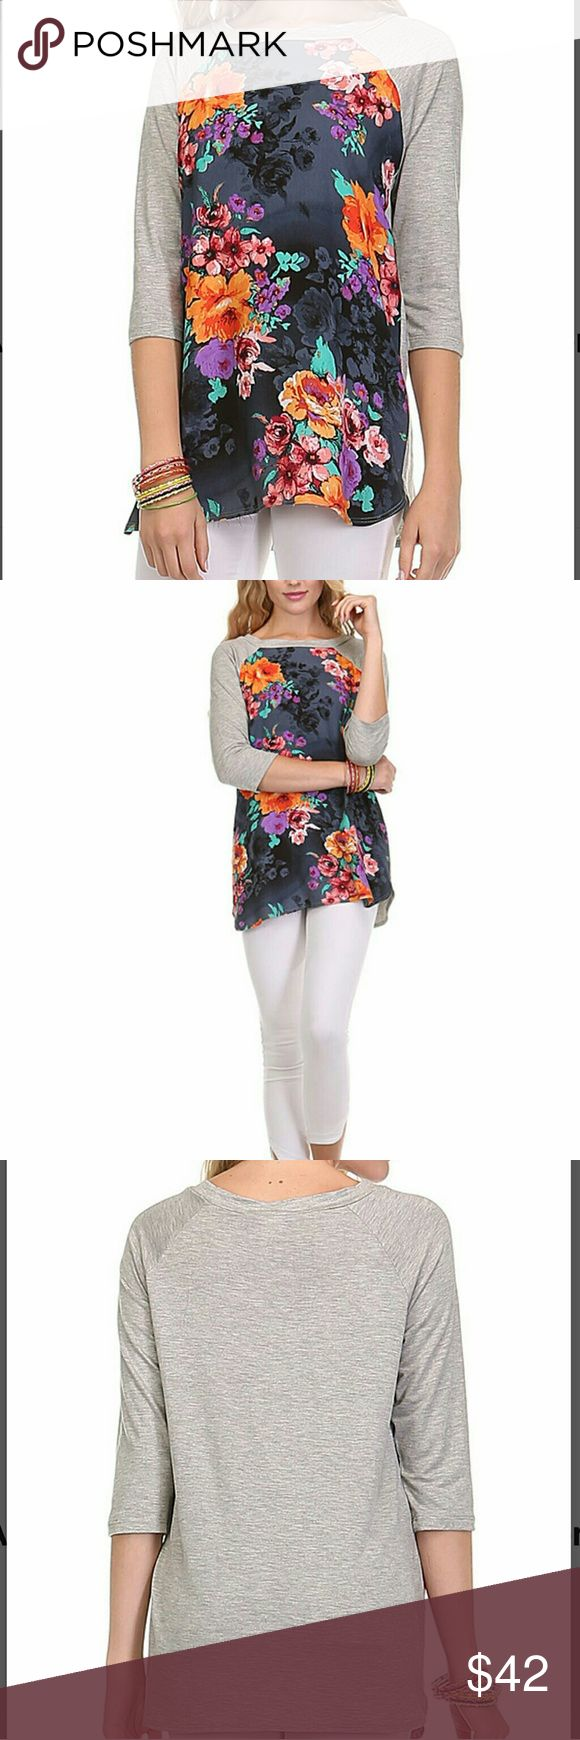 🔶ARRIVES FRI🔶Gray & Purple Floral Raglan Tee Breezy, Sporty and casually comfortable. 🌺 Perfect for Spring and brightening up your wardrobe.  Available in S (0-4), M (4-8), XL (12/14) and XXL (16).  95% rayon, 5% spandex.  Made in USA. lara Tops